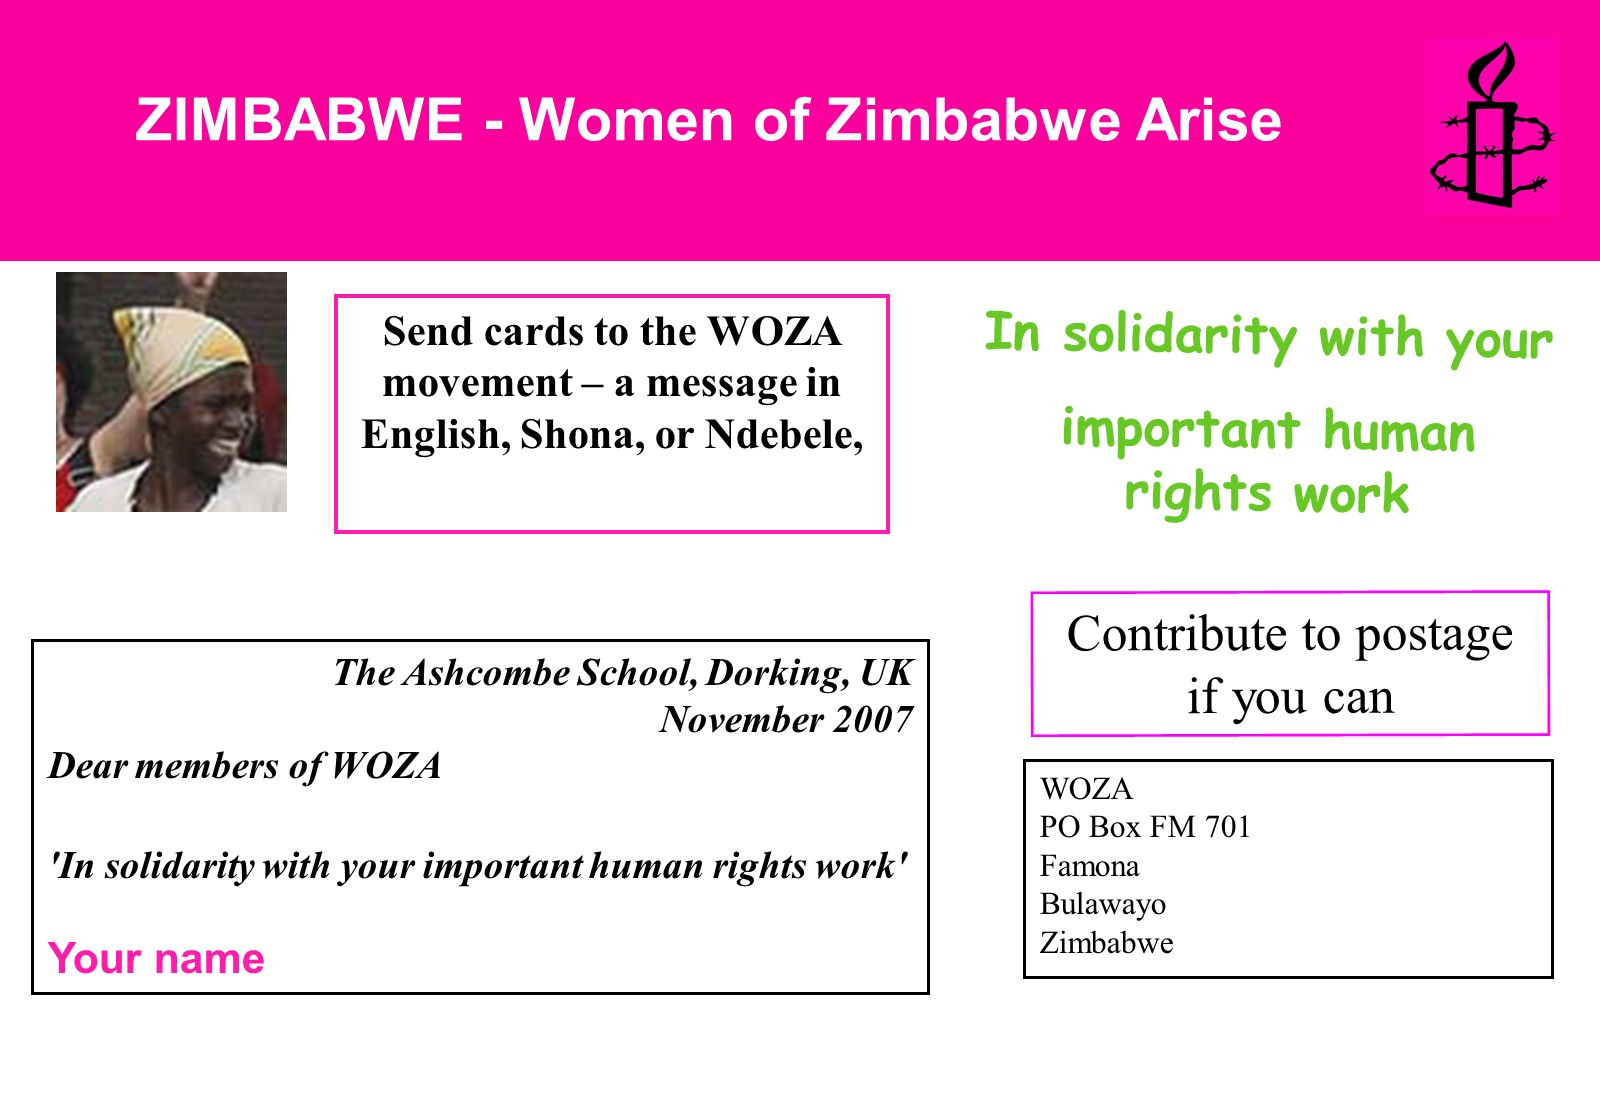 ZIMBABWE - Women of Zimbabwe Arise Send cards to the WOZA movement – a message in English, Shona, or Ndebele, The Ashcombe School, Dorking, UK November 2007 Dear members of WOZA In solidarity with your important human rights work Your name Contribute to postage if you can WOZA PO Box FM 701 Famona Bulawayo Zimbabwe In solidarity with your important human rights work